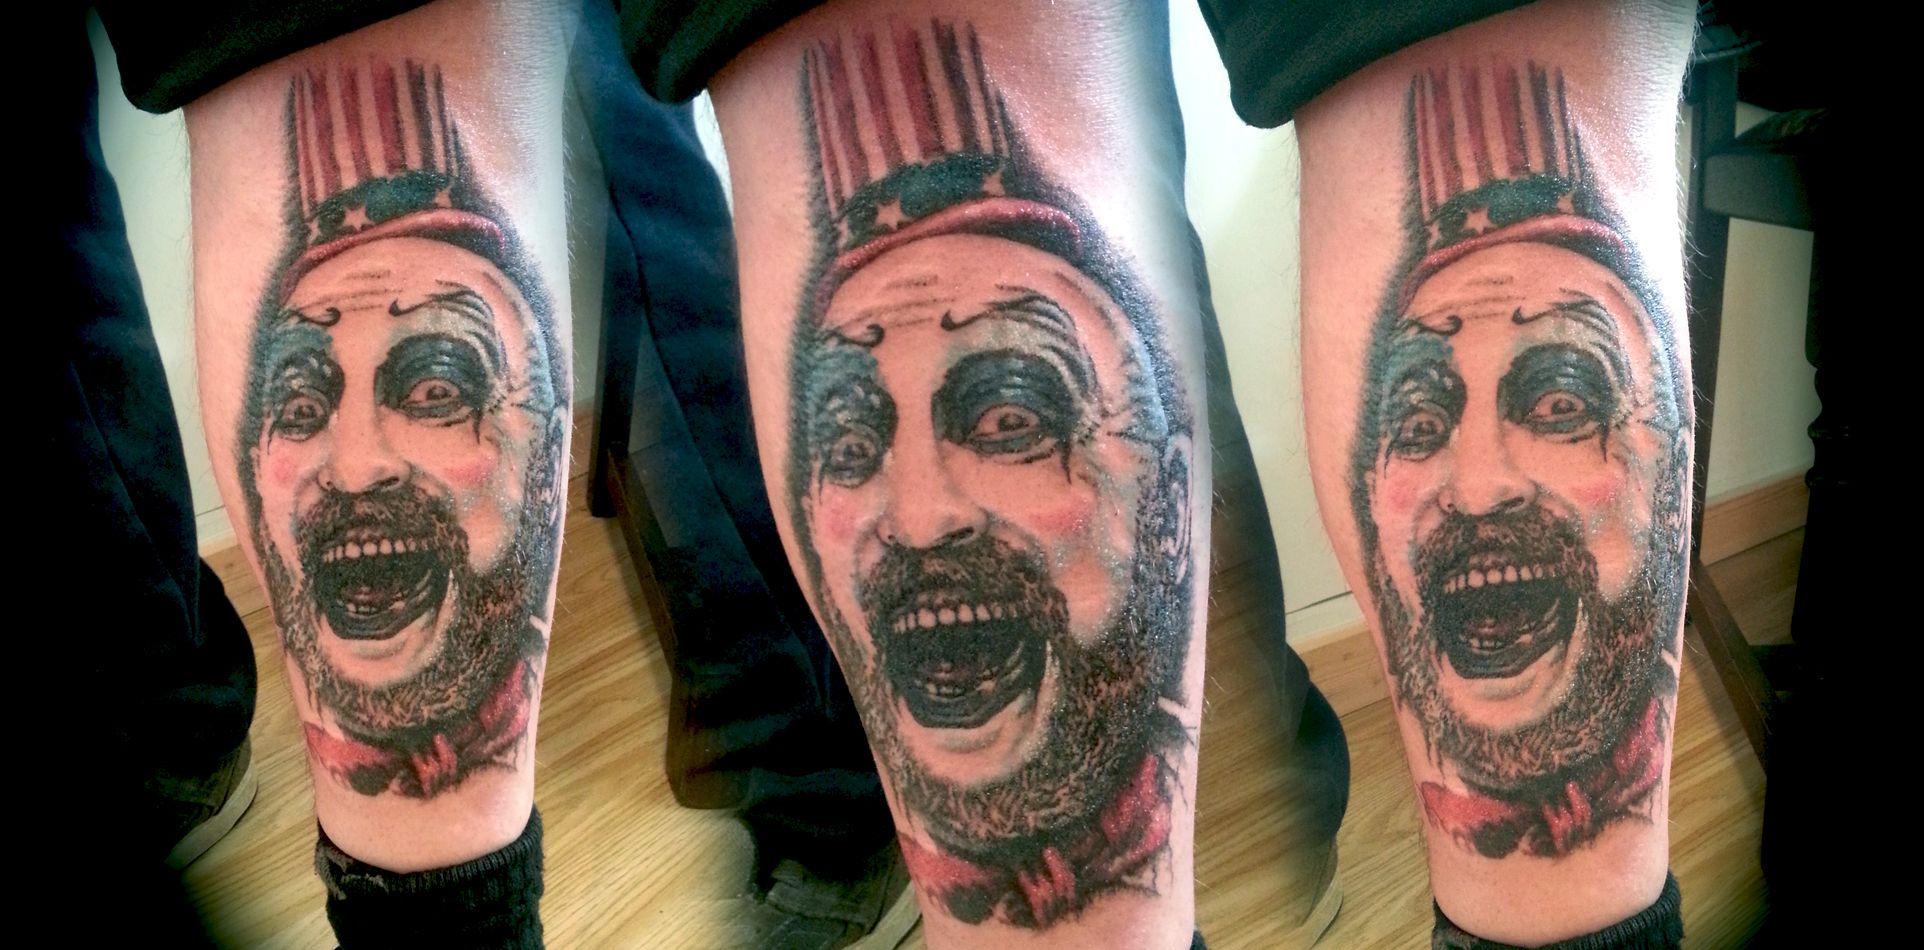 Captain Spaulding tattoo by Jodypig #tattoos #killerink #coverup #blackandgrey #sleeve #unique #art #amazingink #tattooartist #tattooist #tattooer #artistattoos #bright_and_bold #uk #blacktattooart #ink #tattooflash #tattooed #tattoo #blackink #artist #personaltattoos #tattoosleeve #tattooportrait #captainspaulding #superb_tattoo